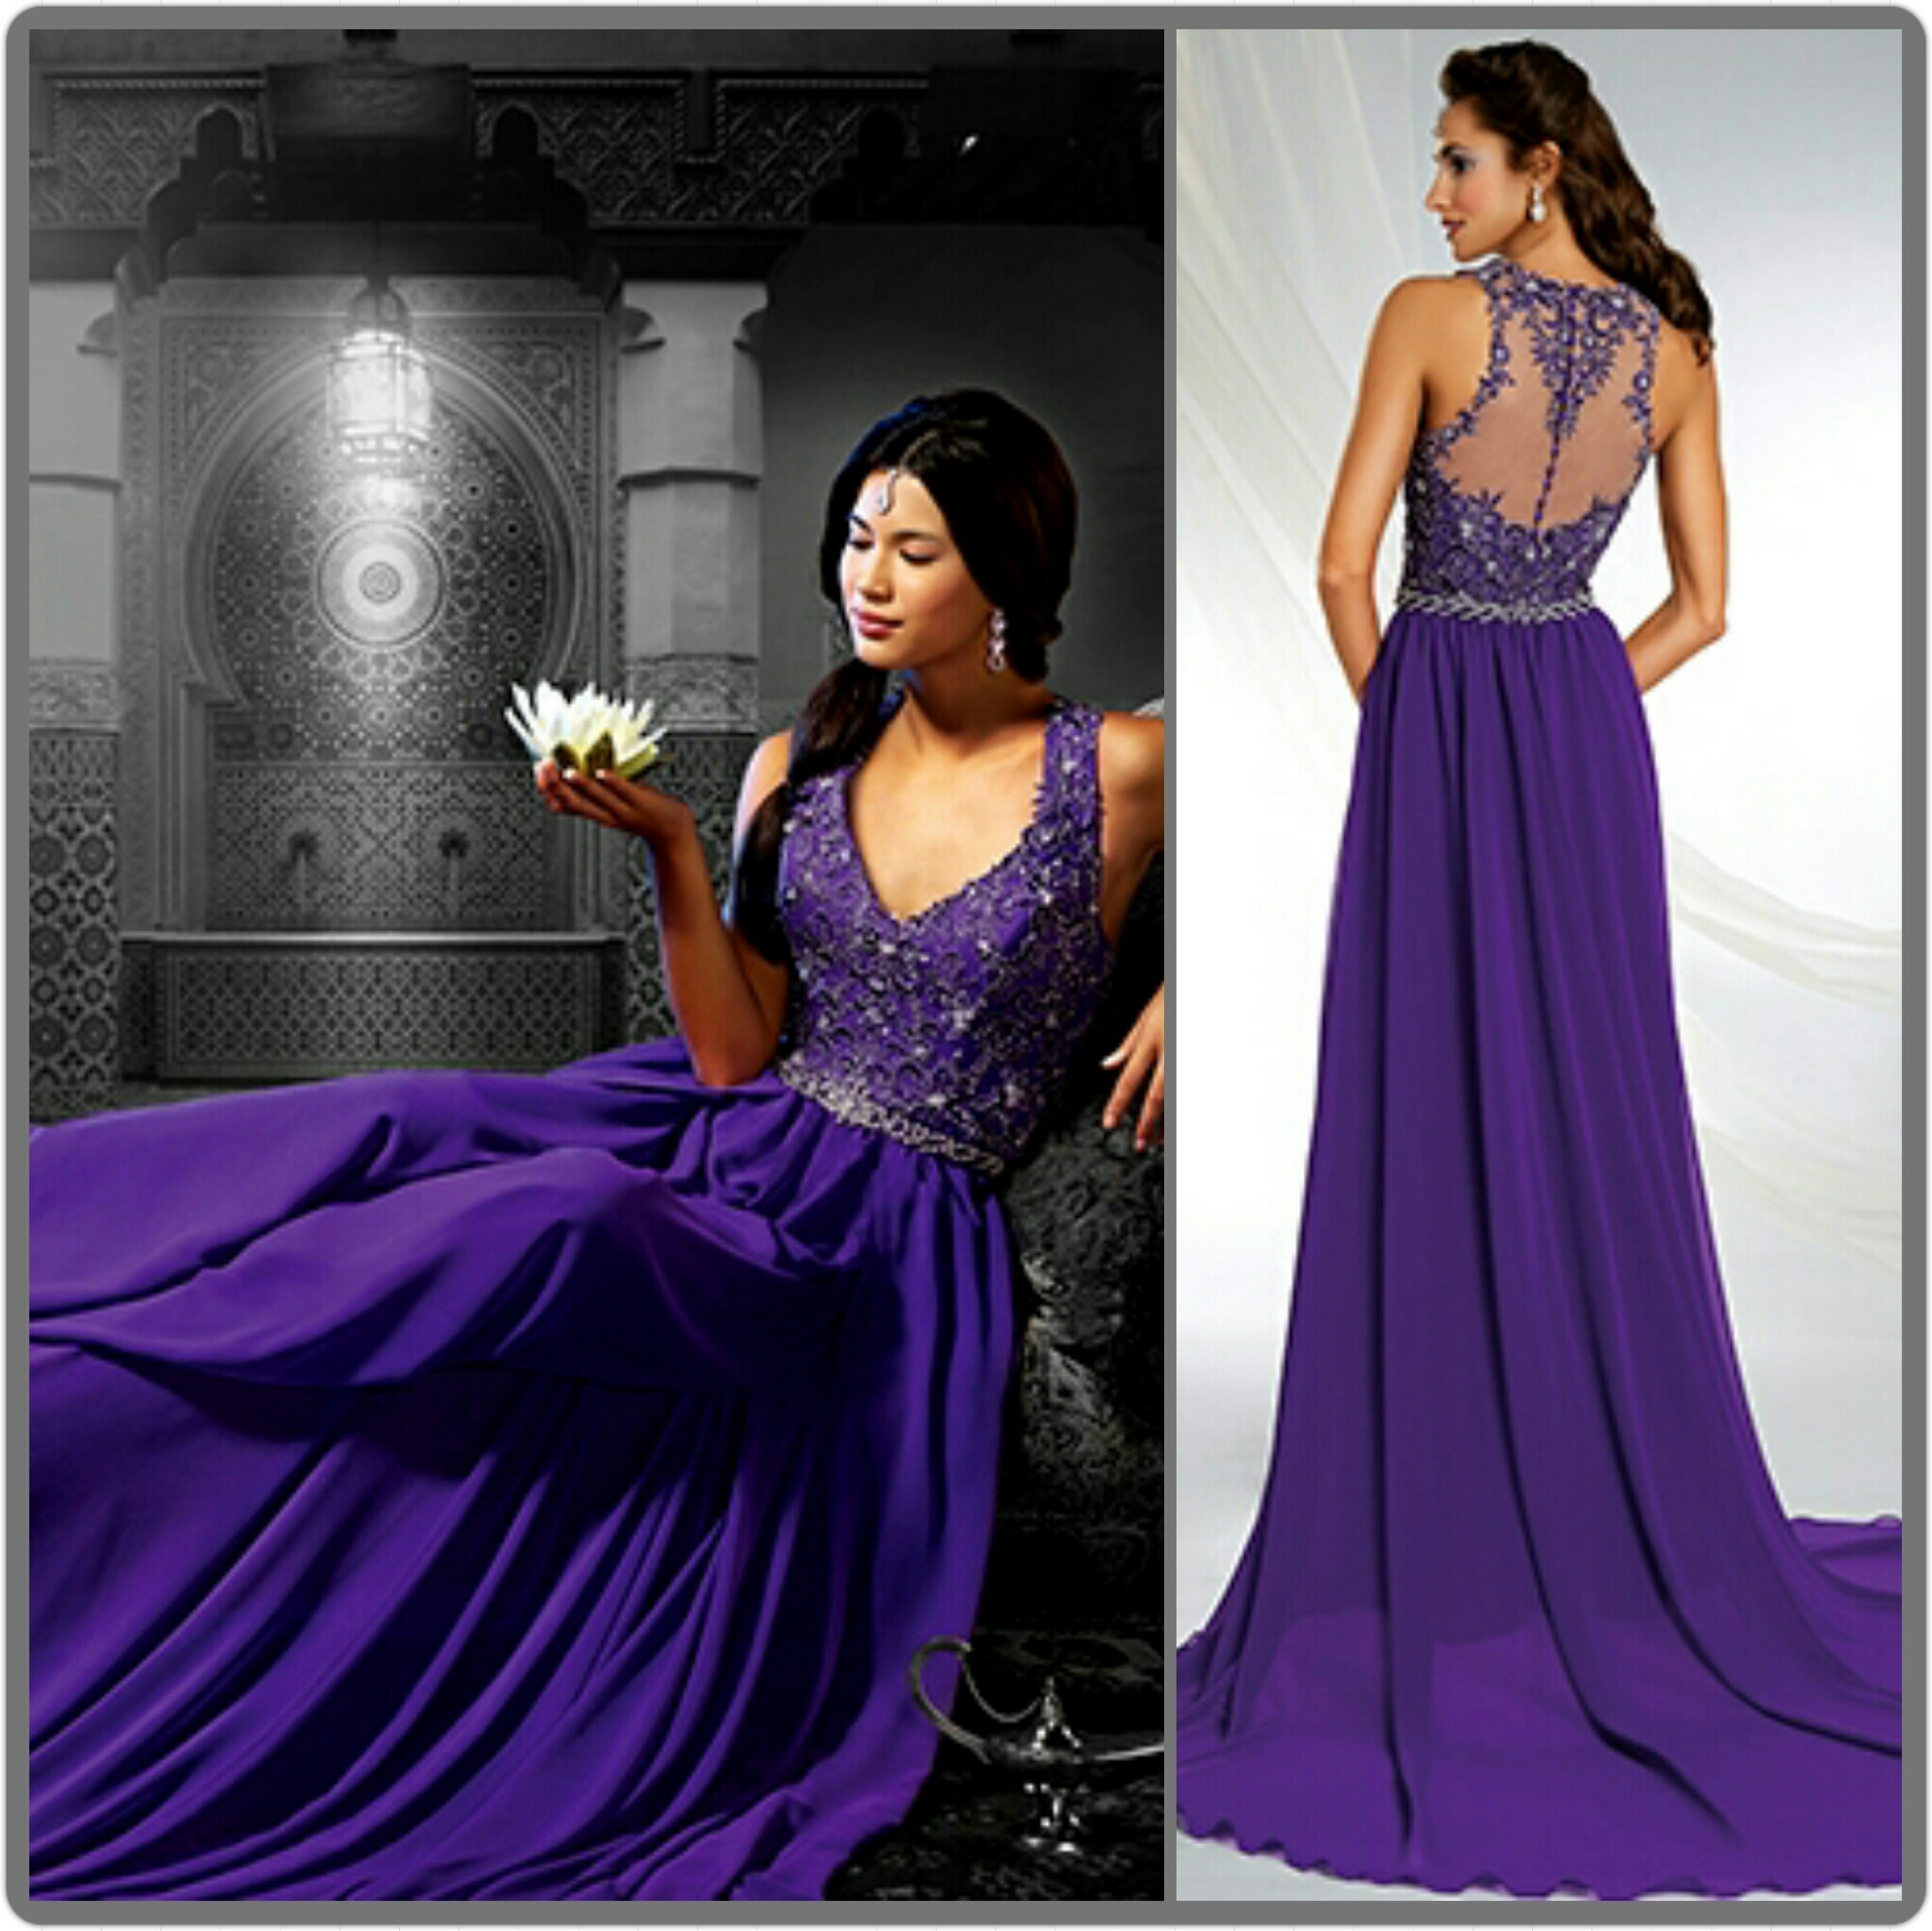 20 Gorgeous Wedding Gowns in Shades of Purple | TAGWeddings